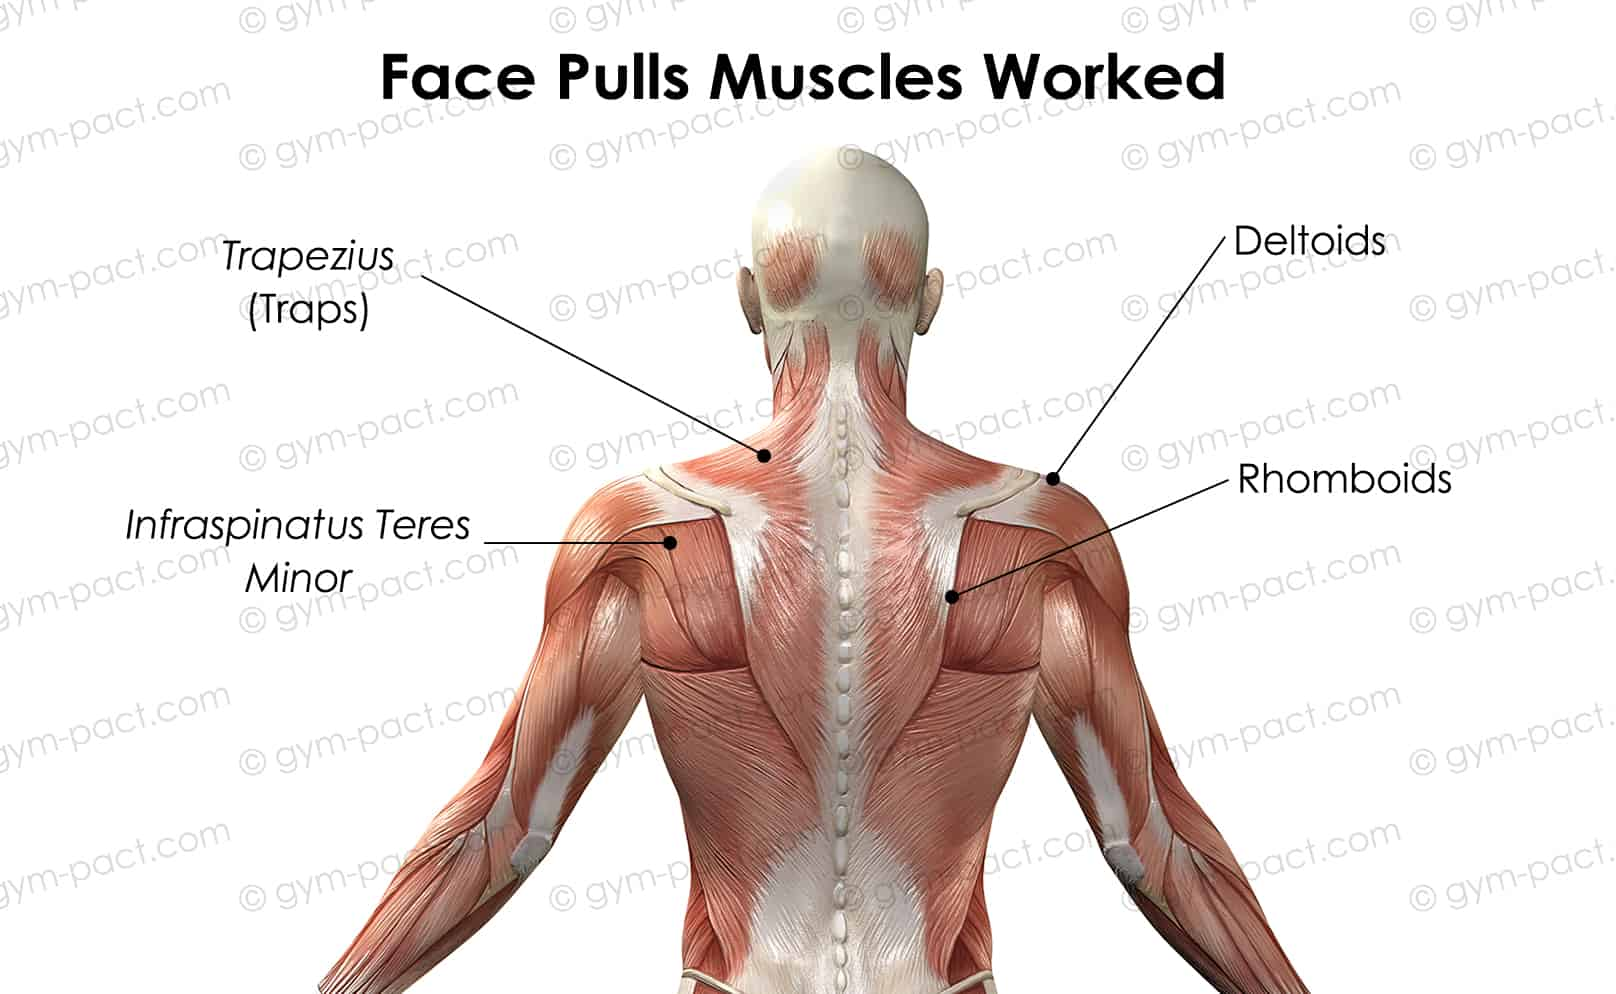 Face pulls muscles worked